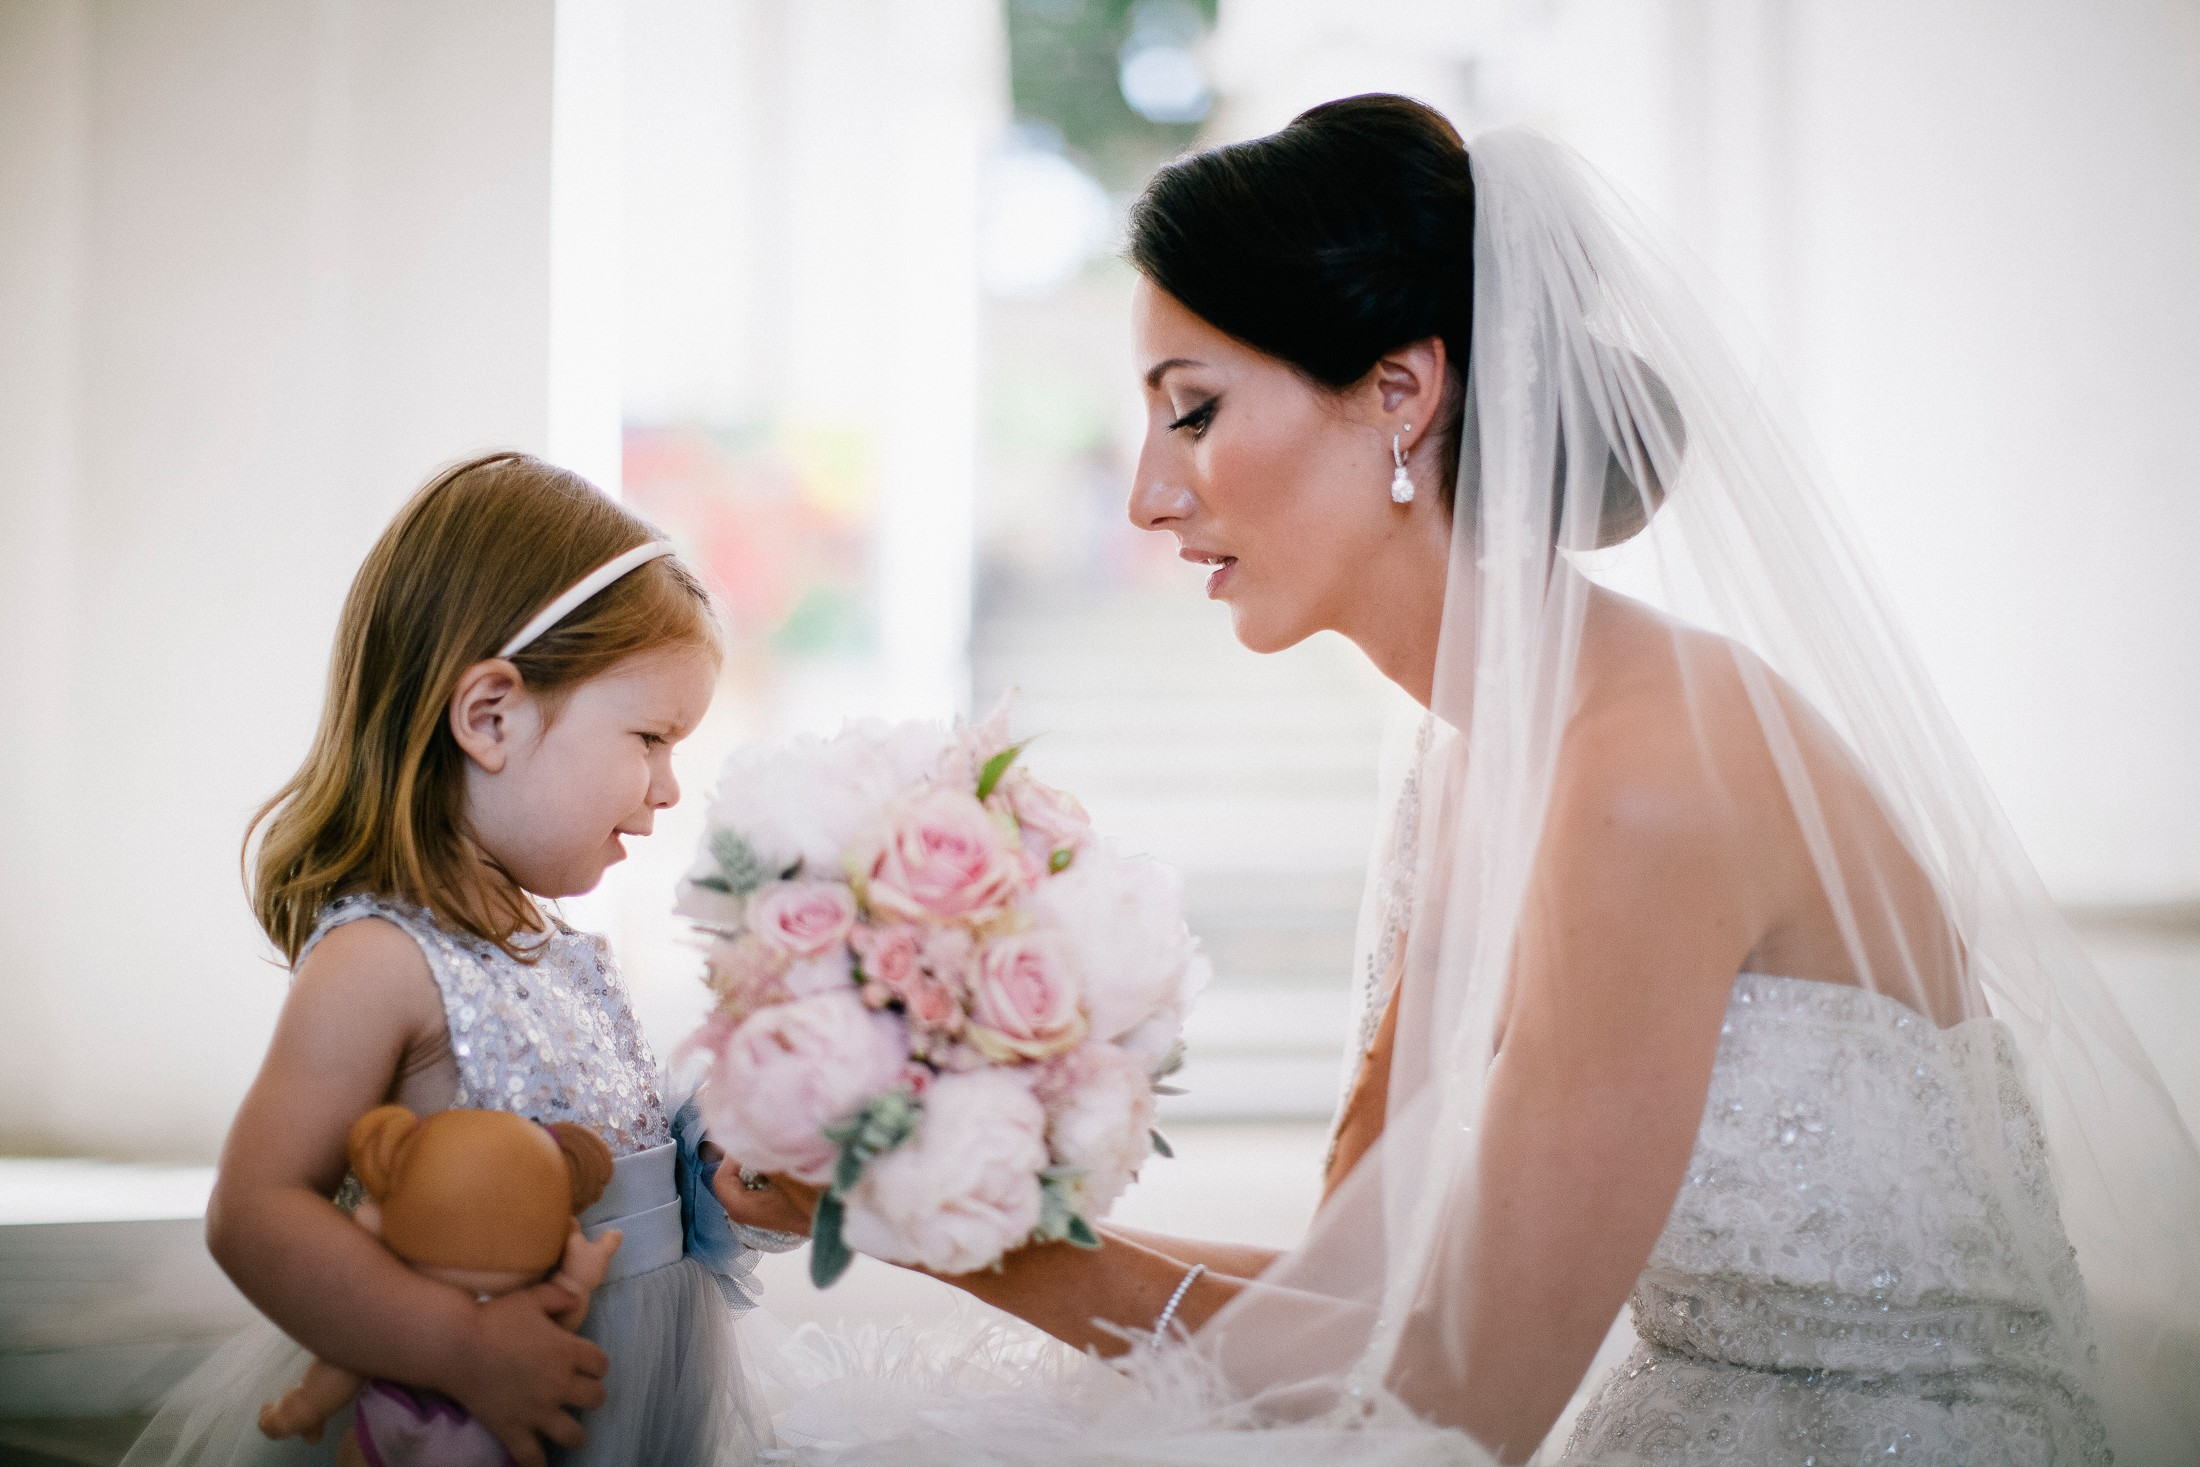 the bride with her young daughter